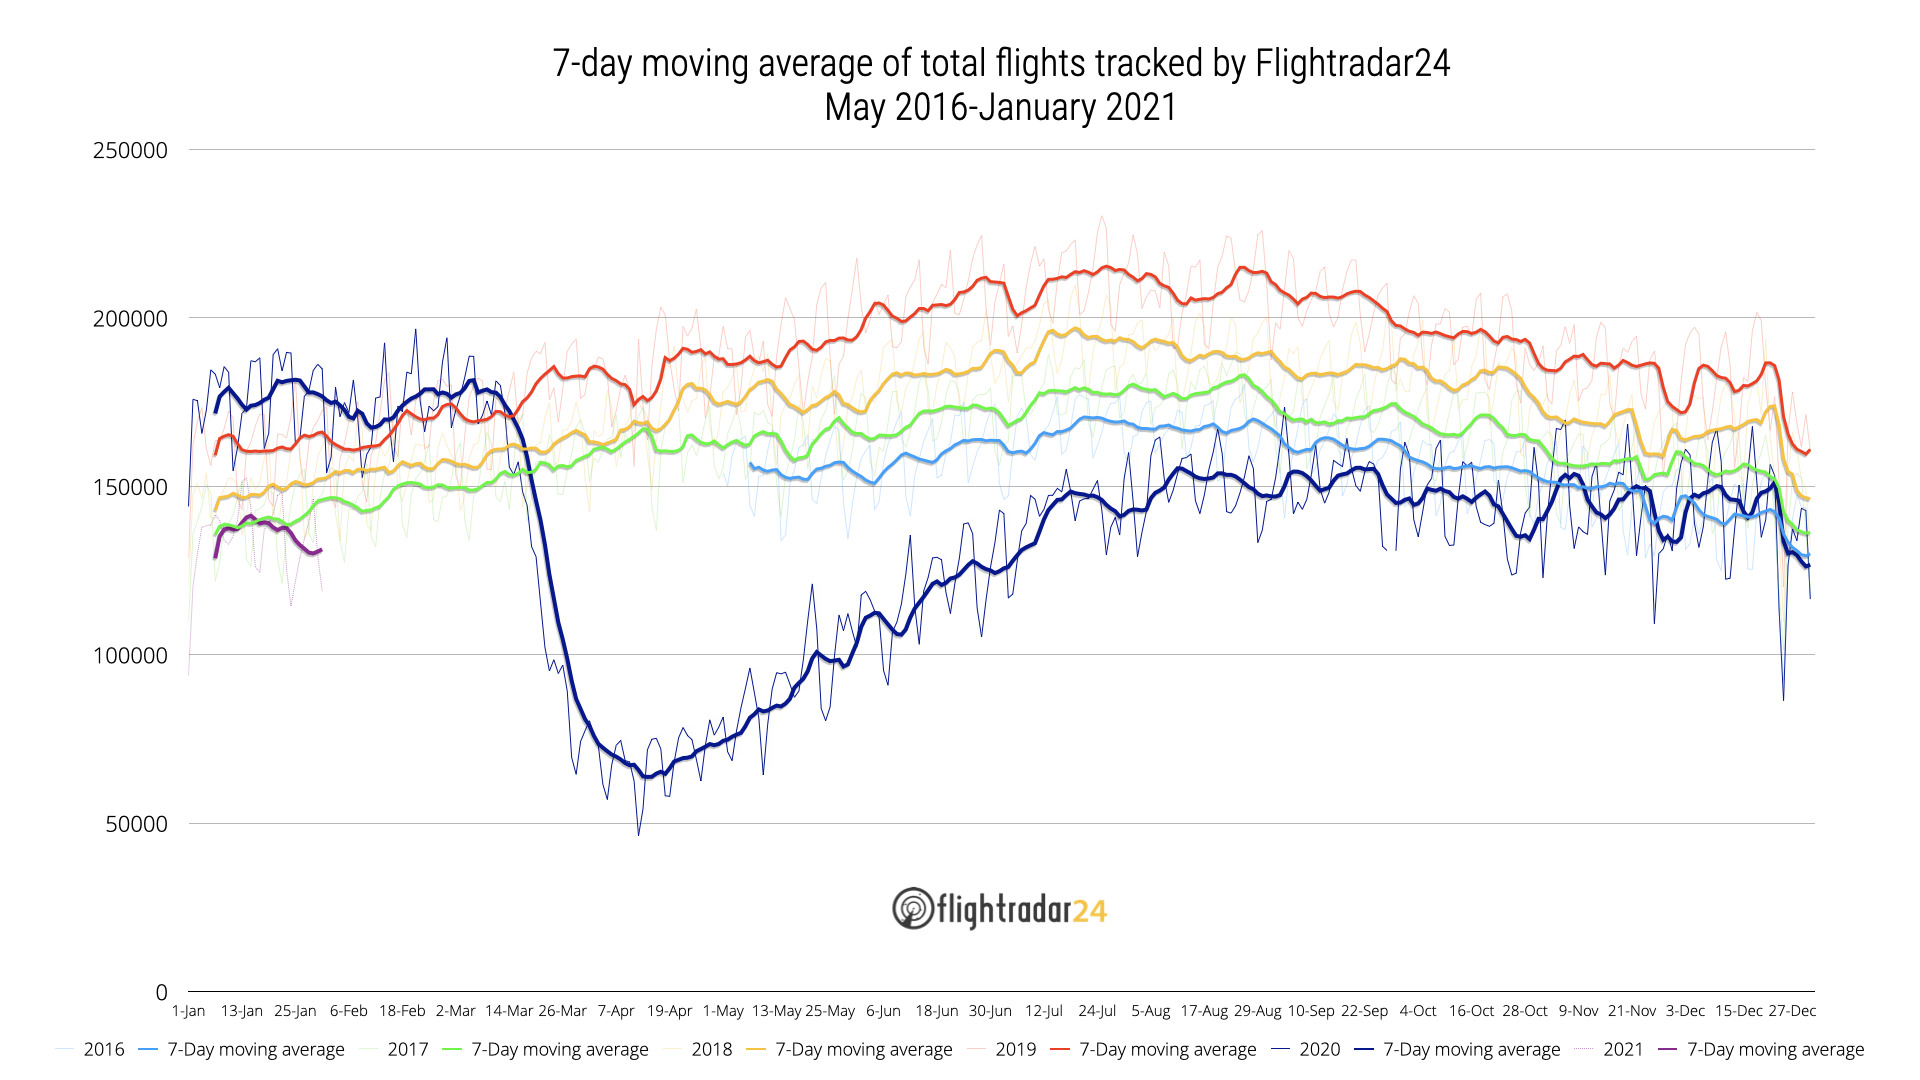 2016-January 2021 Total Flights Tracked